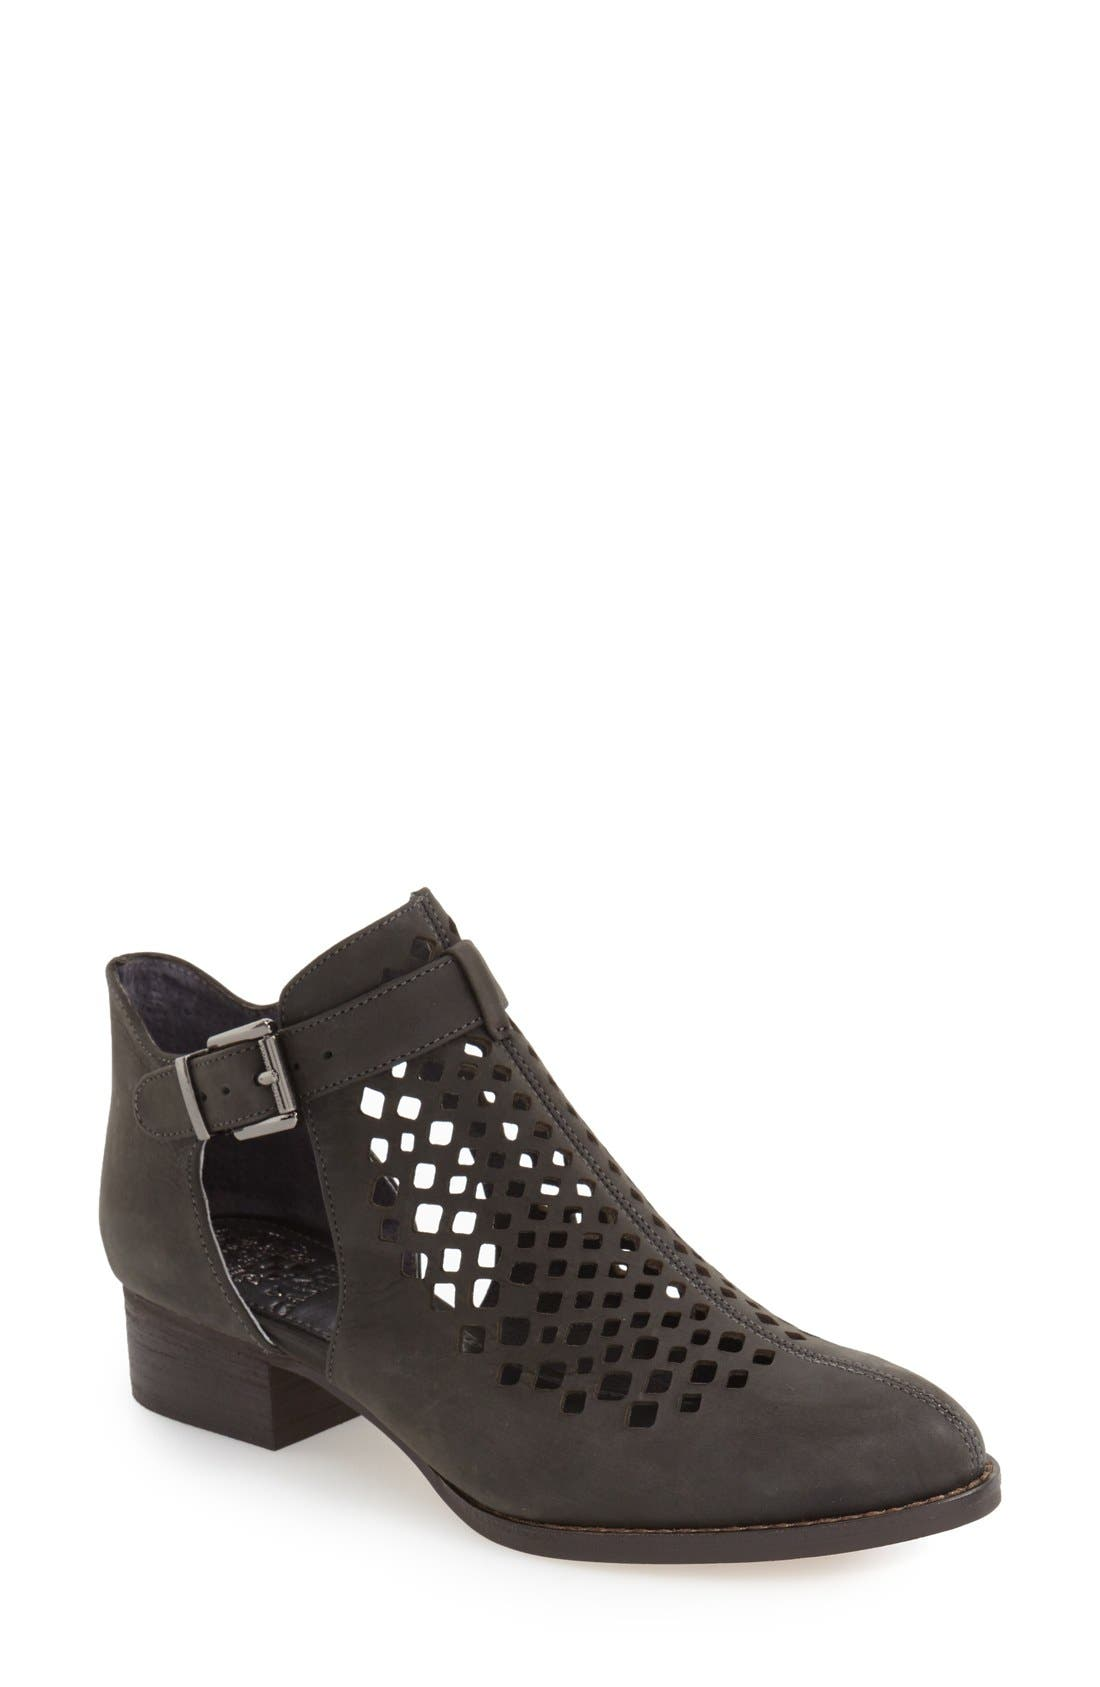 'Cadey' Cutout Bootie,                         Main,                         color, Battleship Nubuck Leather